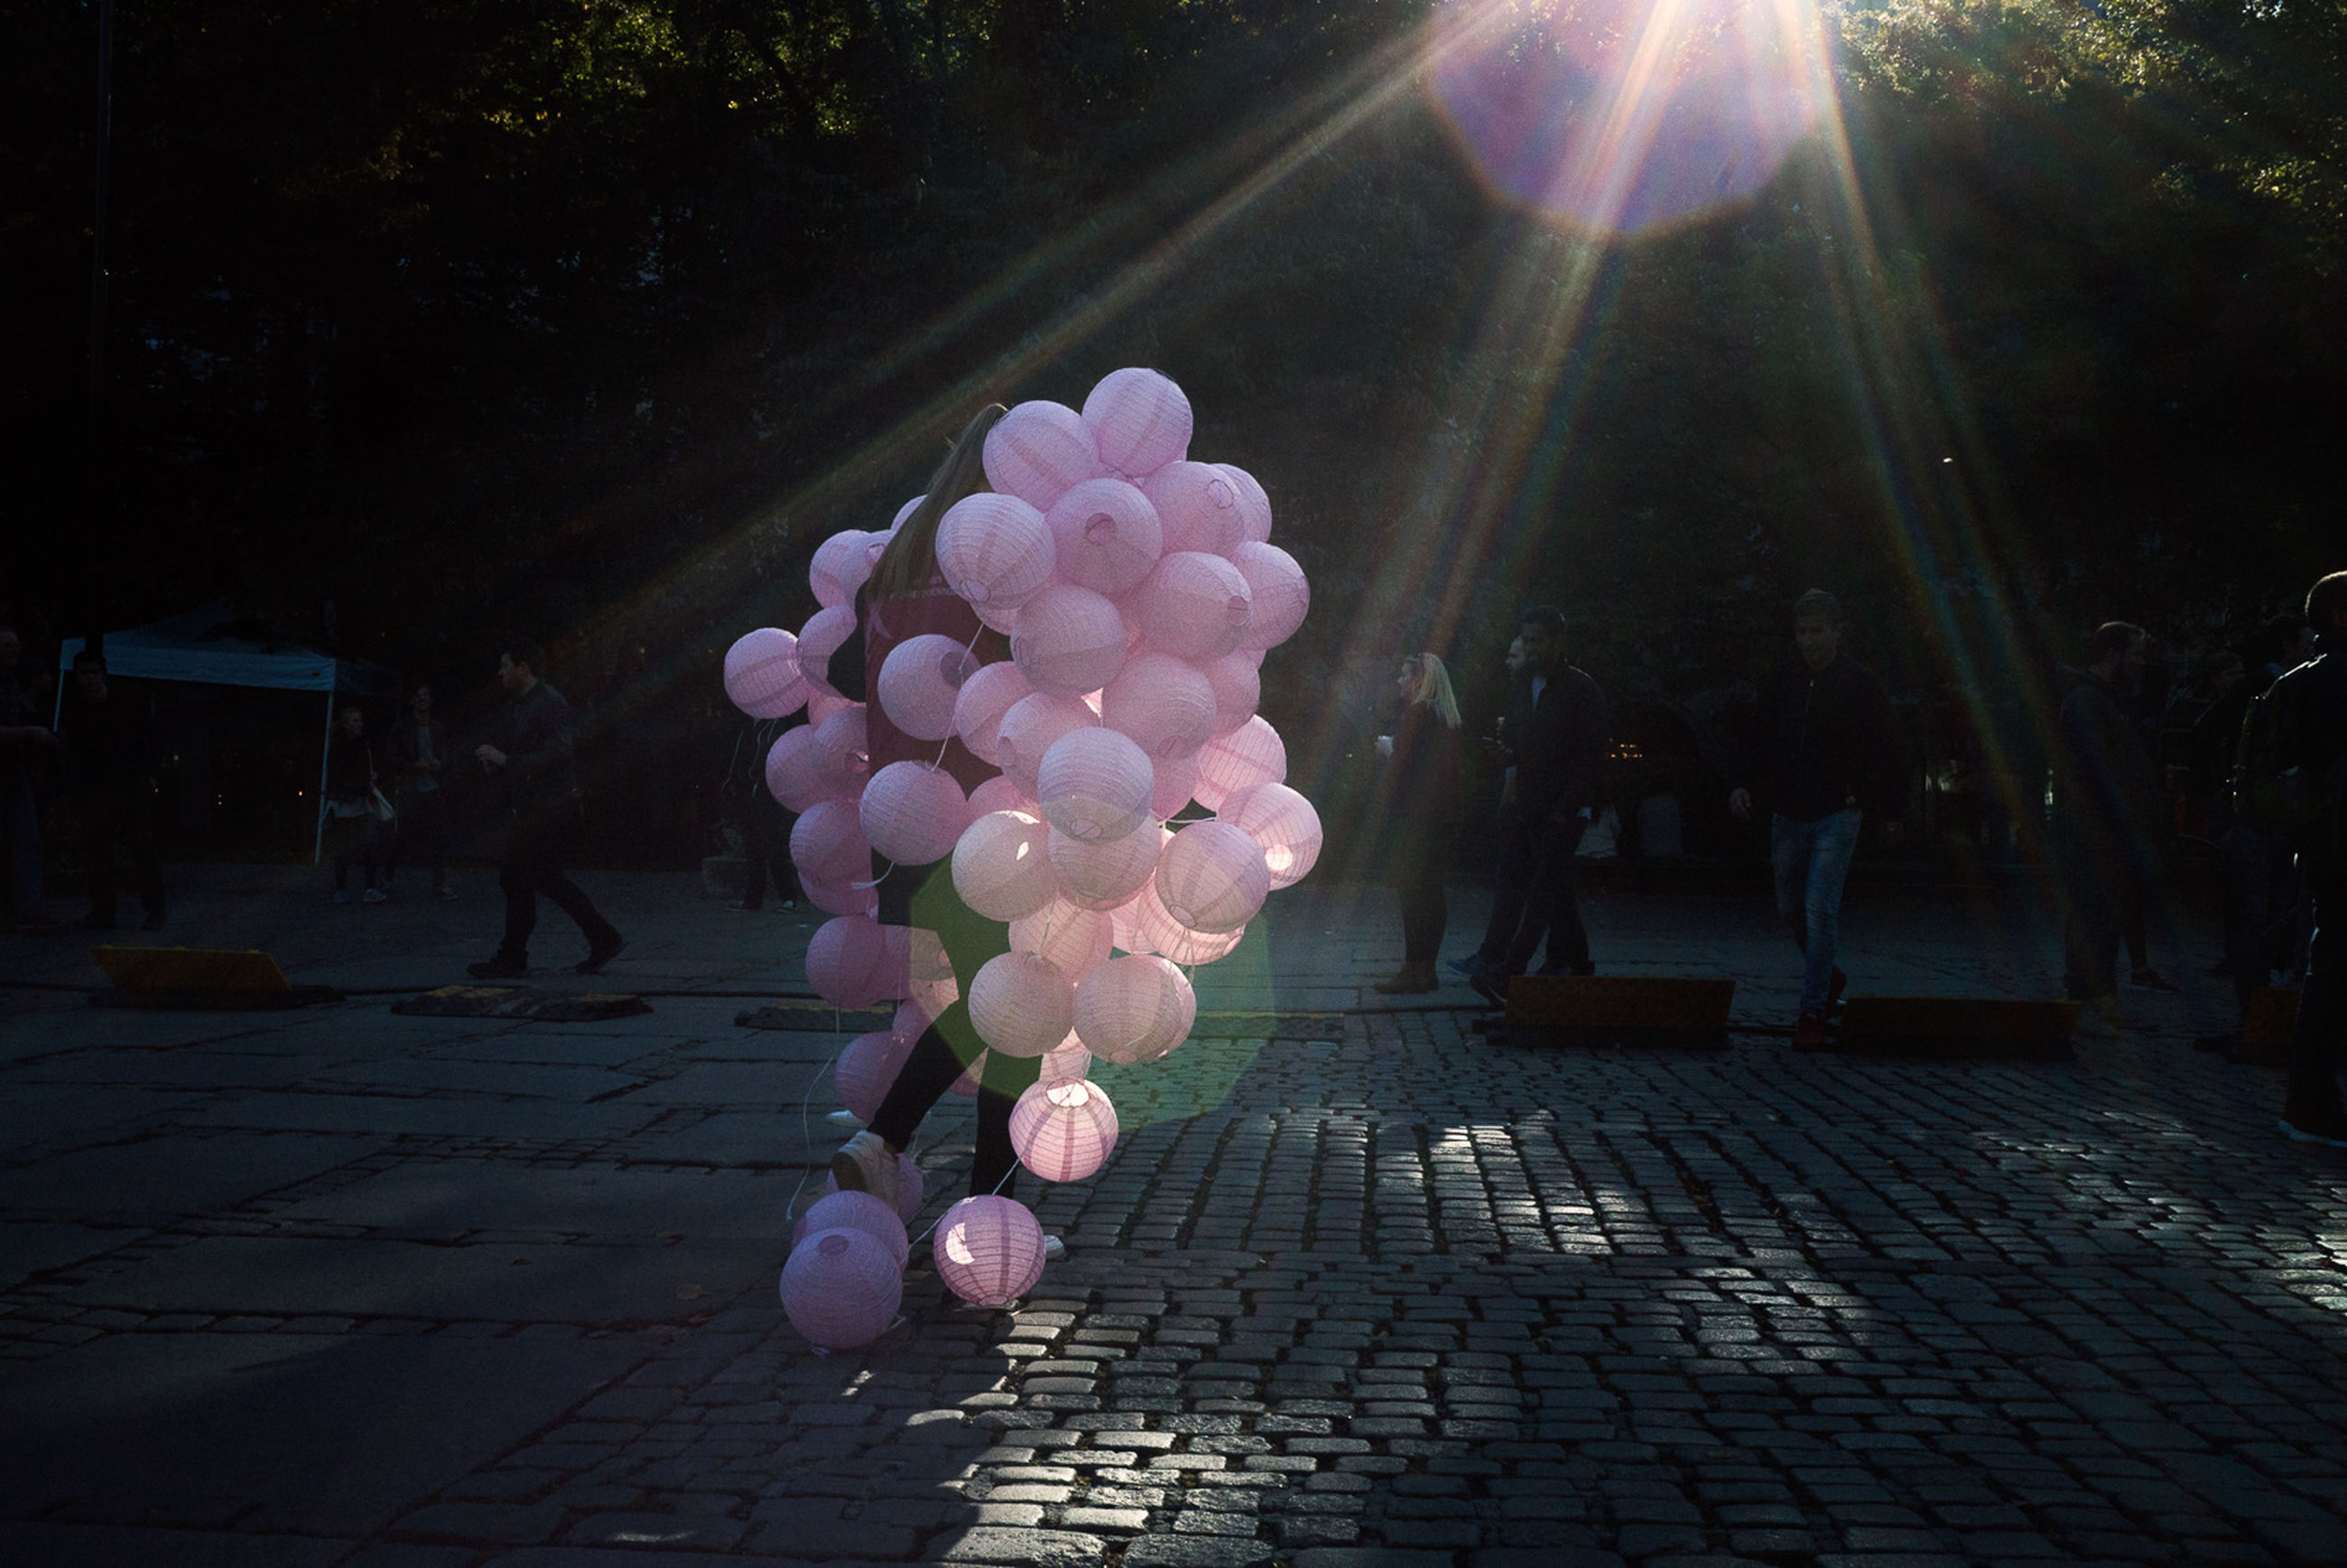 sunlight, outdoors, celebration, no people, day, balloon, flower, nature